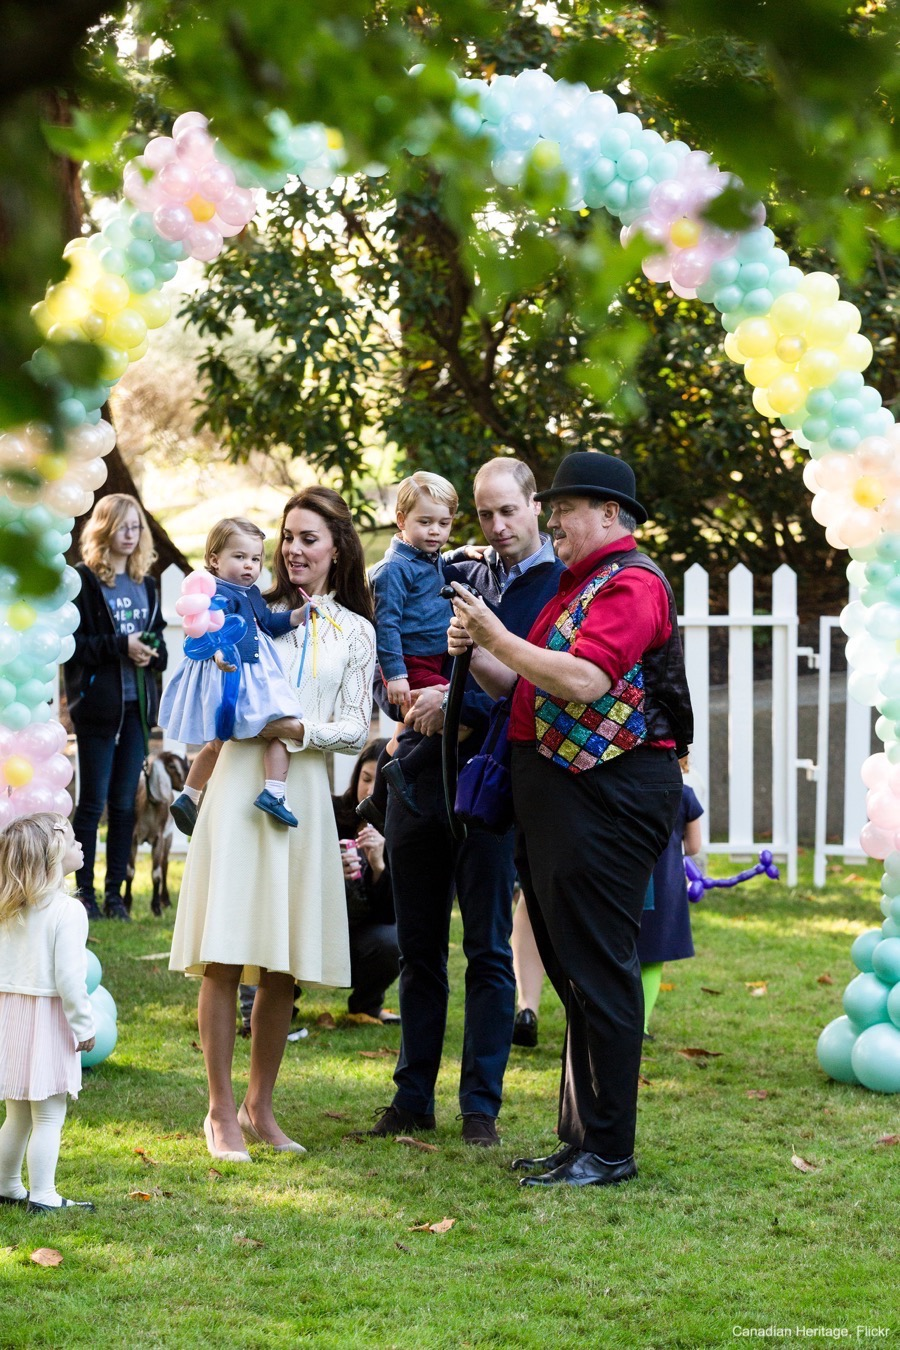 William, Kate, George and Charlotte attend a Children's Garden Party in Canada